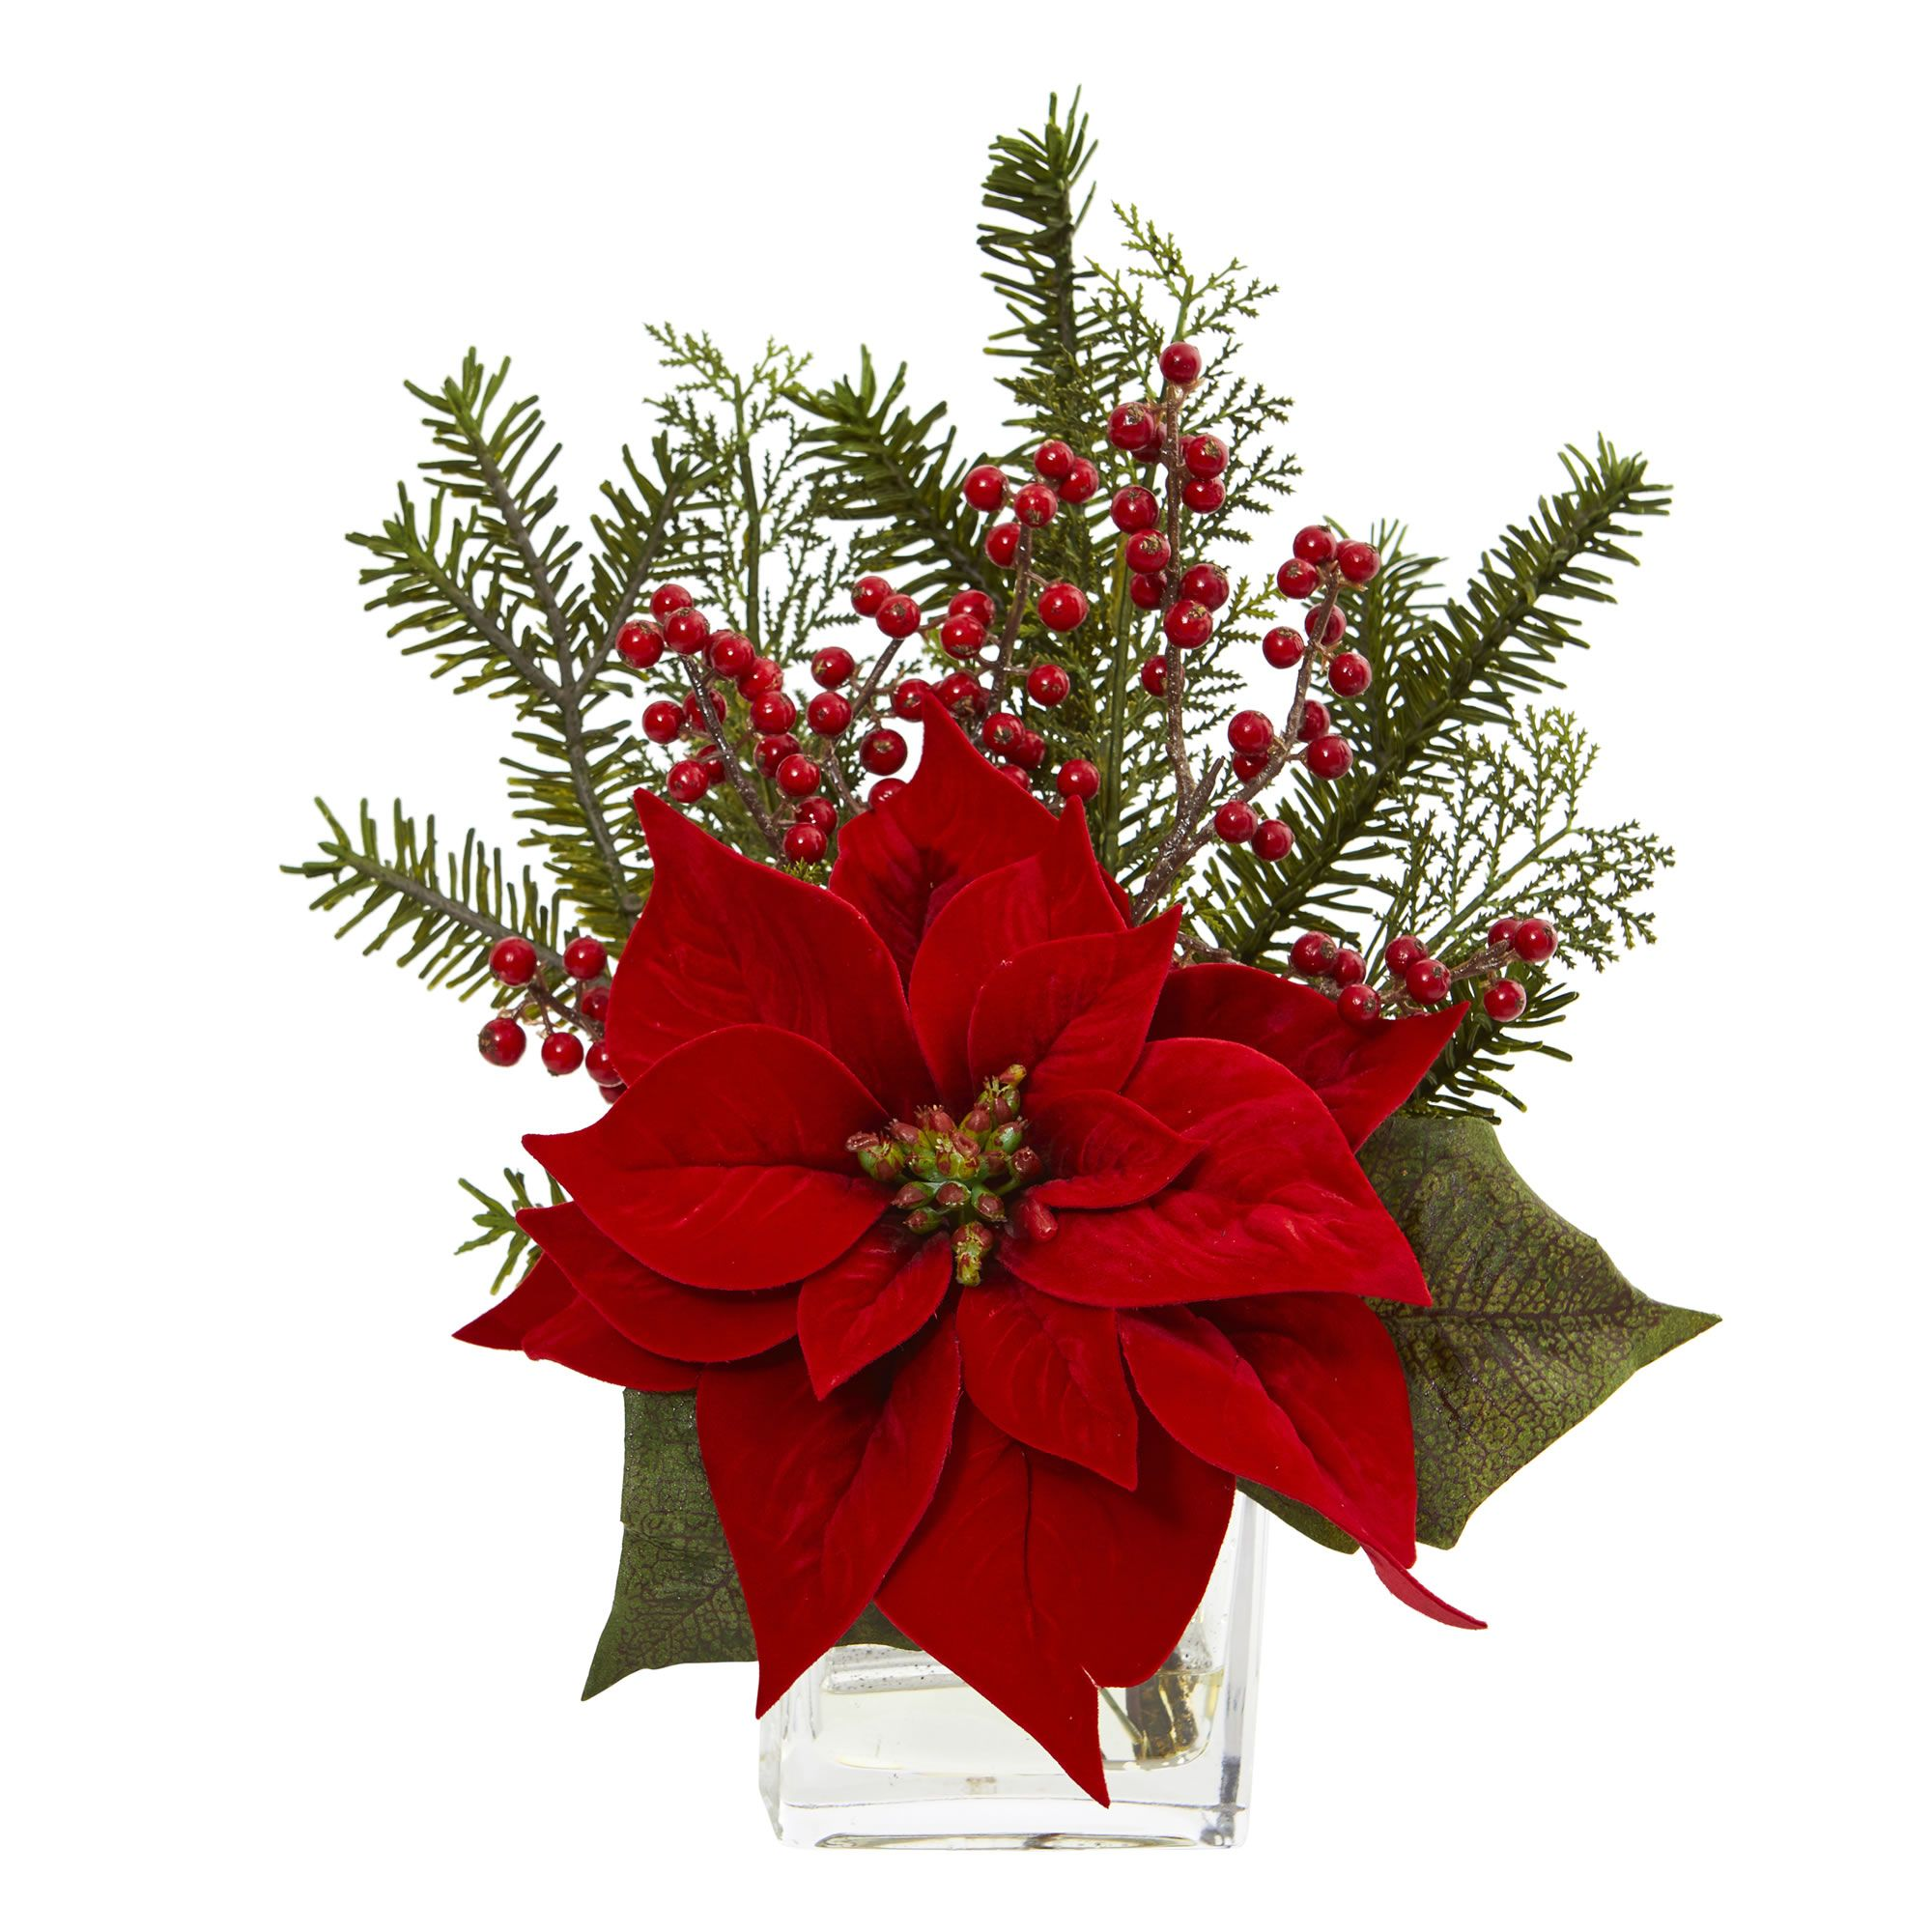 "Faux 14""H Poinsettia, Pine and Berries in Vase Christmas"